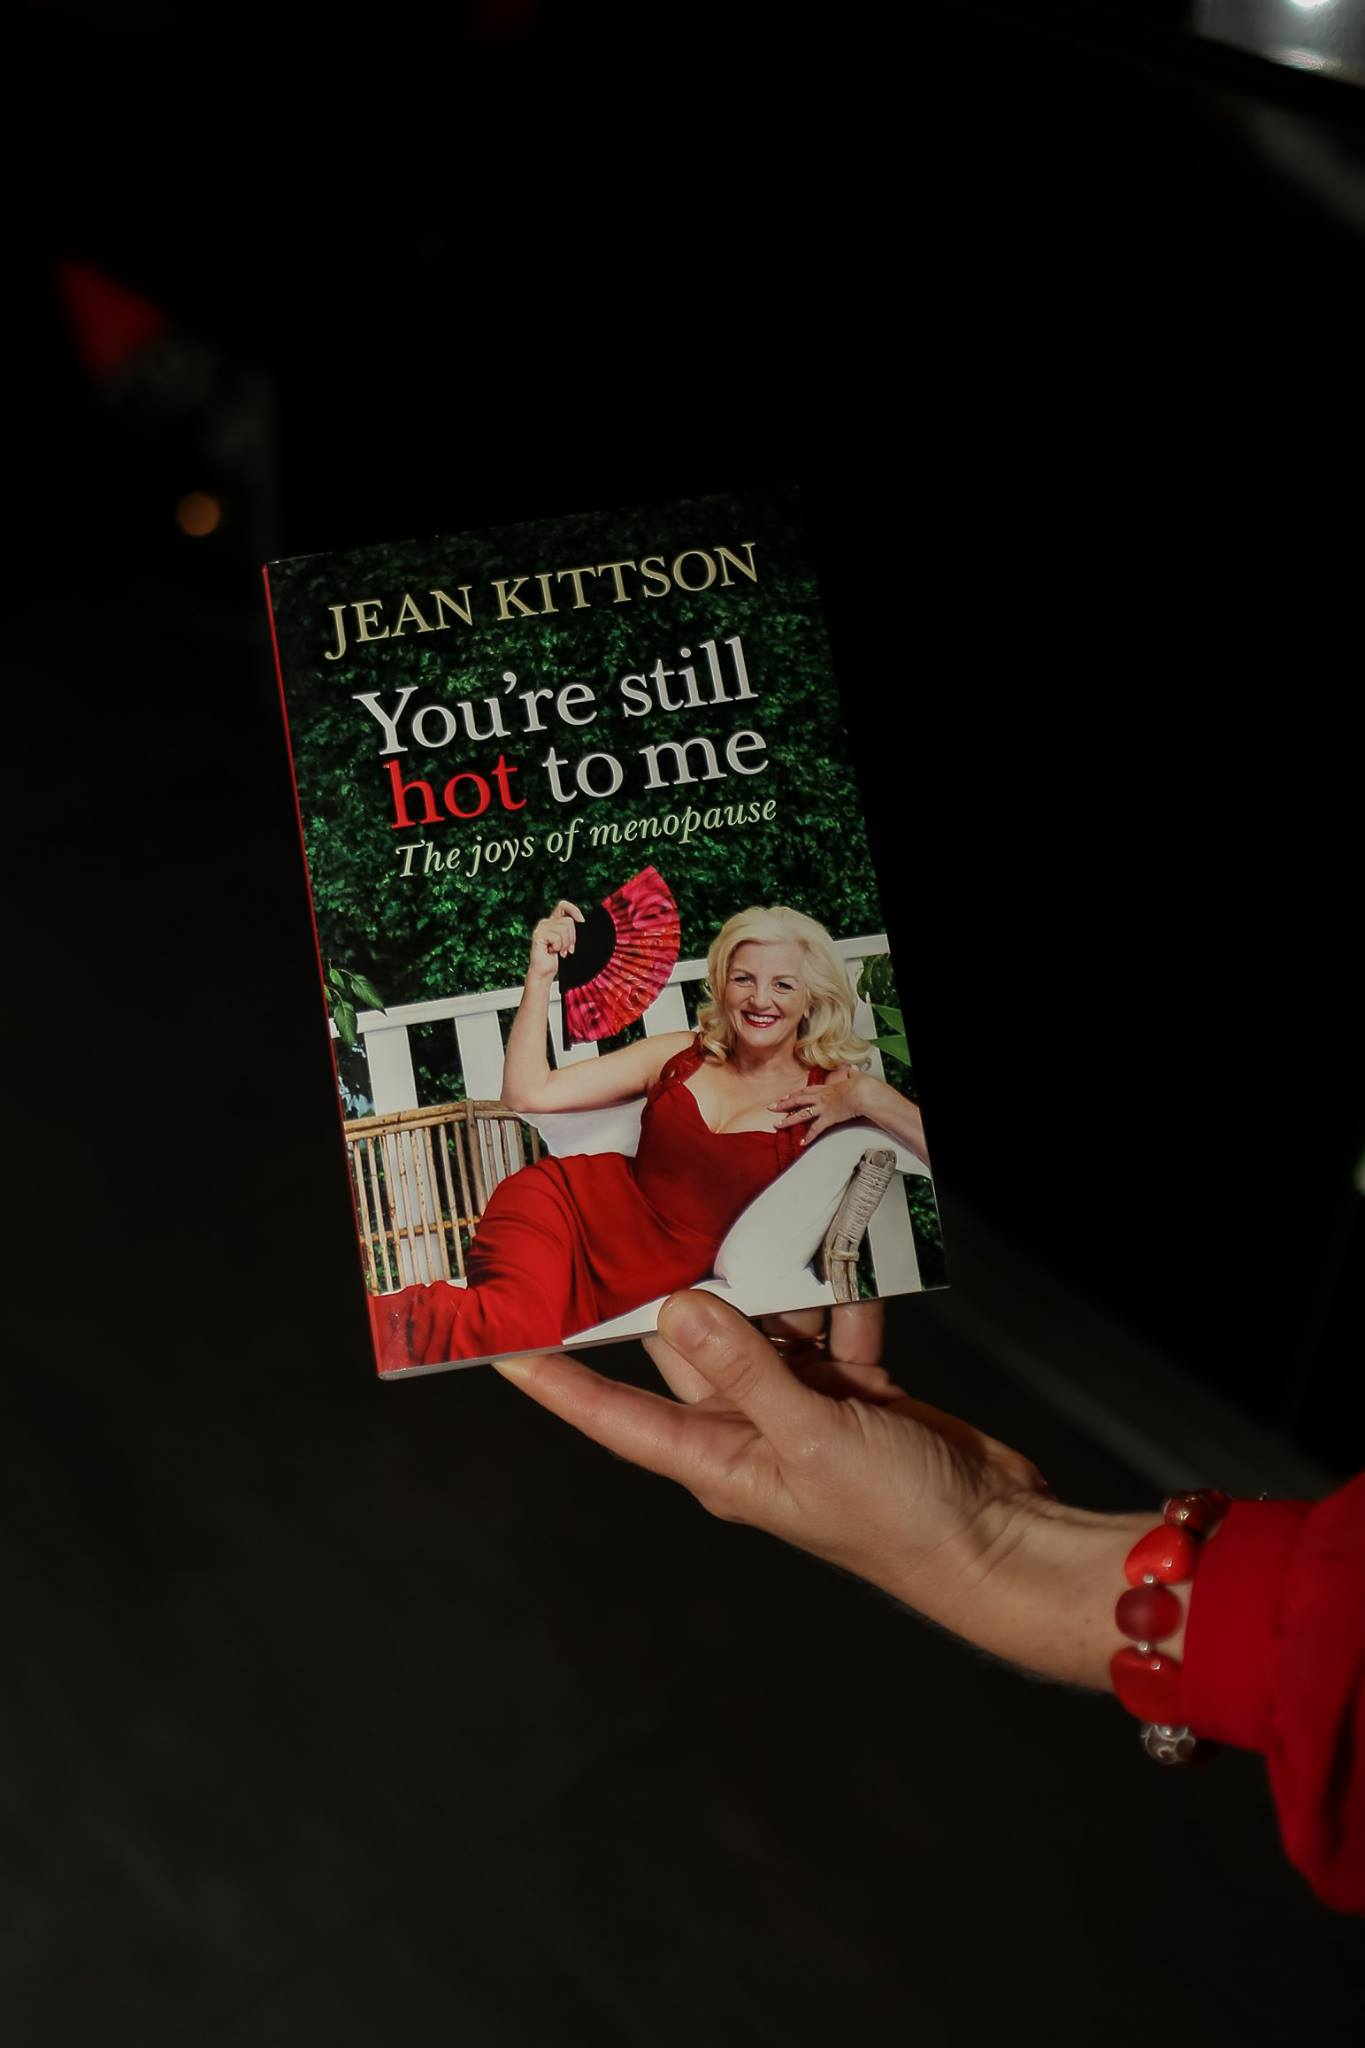 The fabulous book 'You're Still Hot to Me', written by entertainer and author, Jean Kittson. Humorous and well researched, worth buying for any woman with hormones!